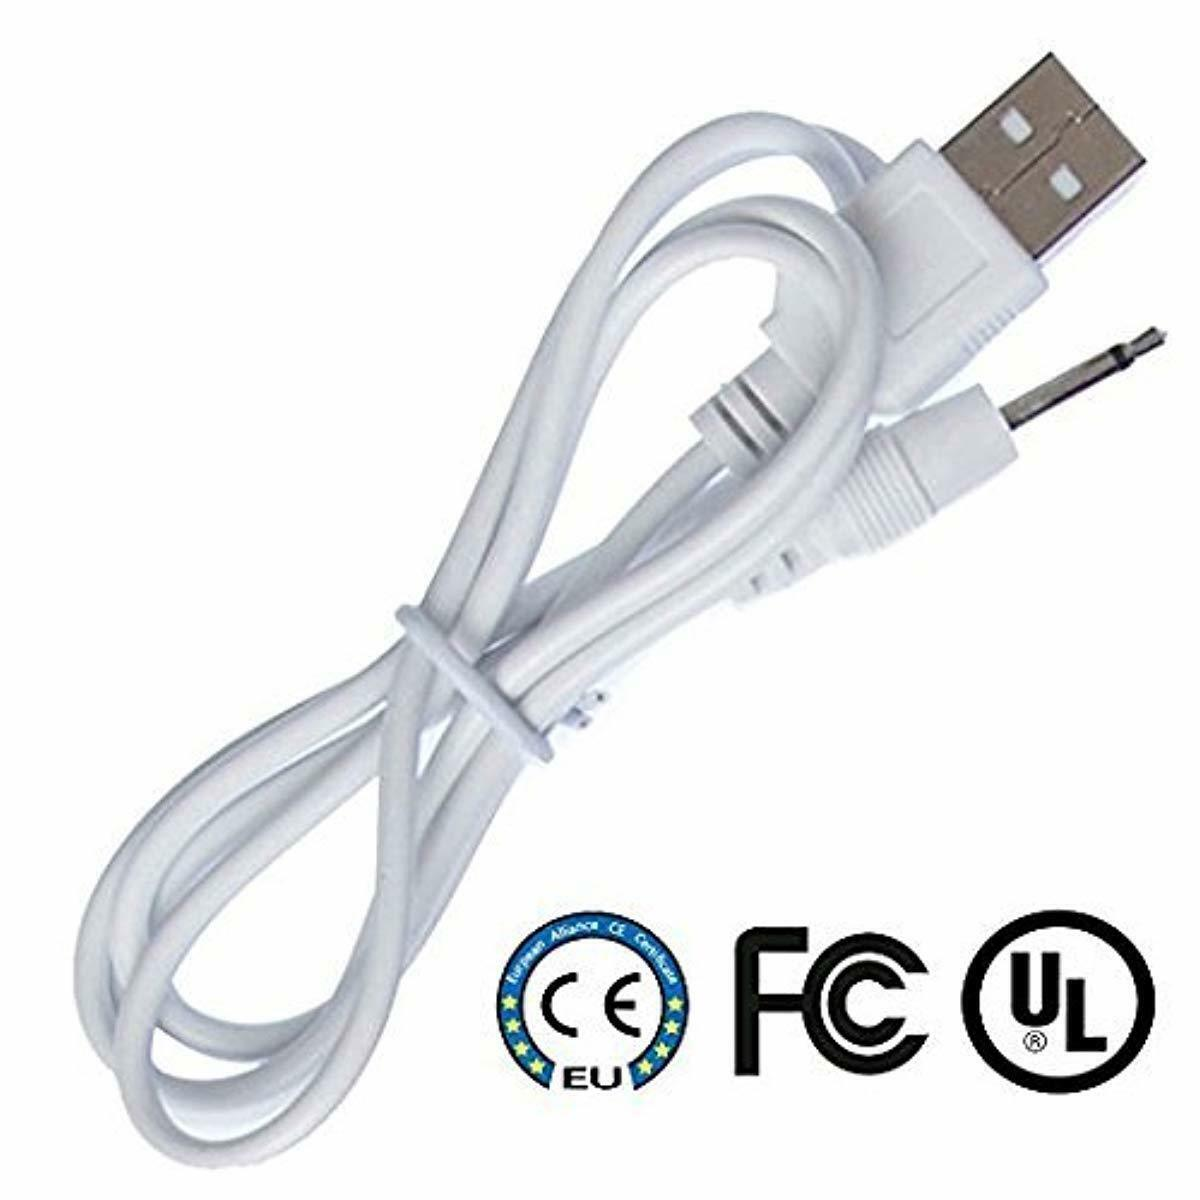 Original  DC Charging Cable USB Cord for Rechargeable Device .25mm